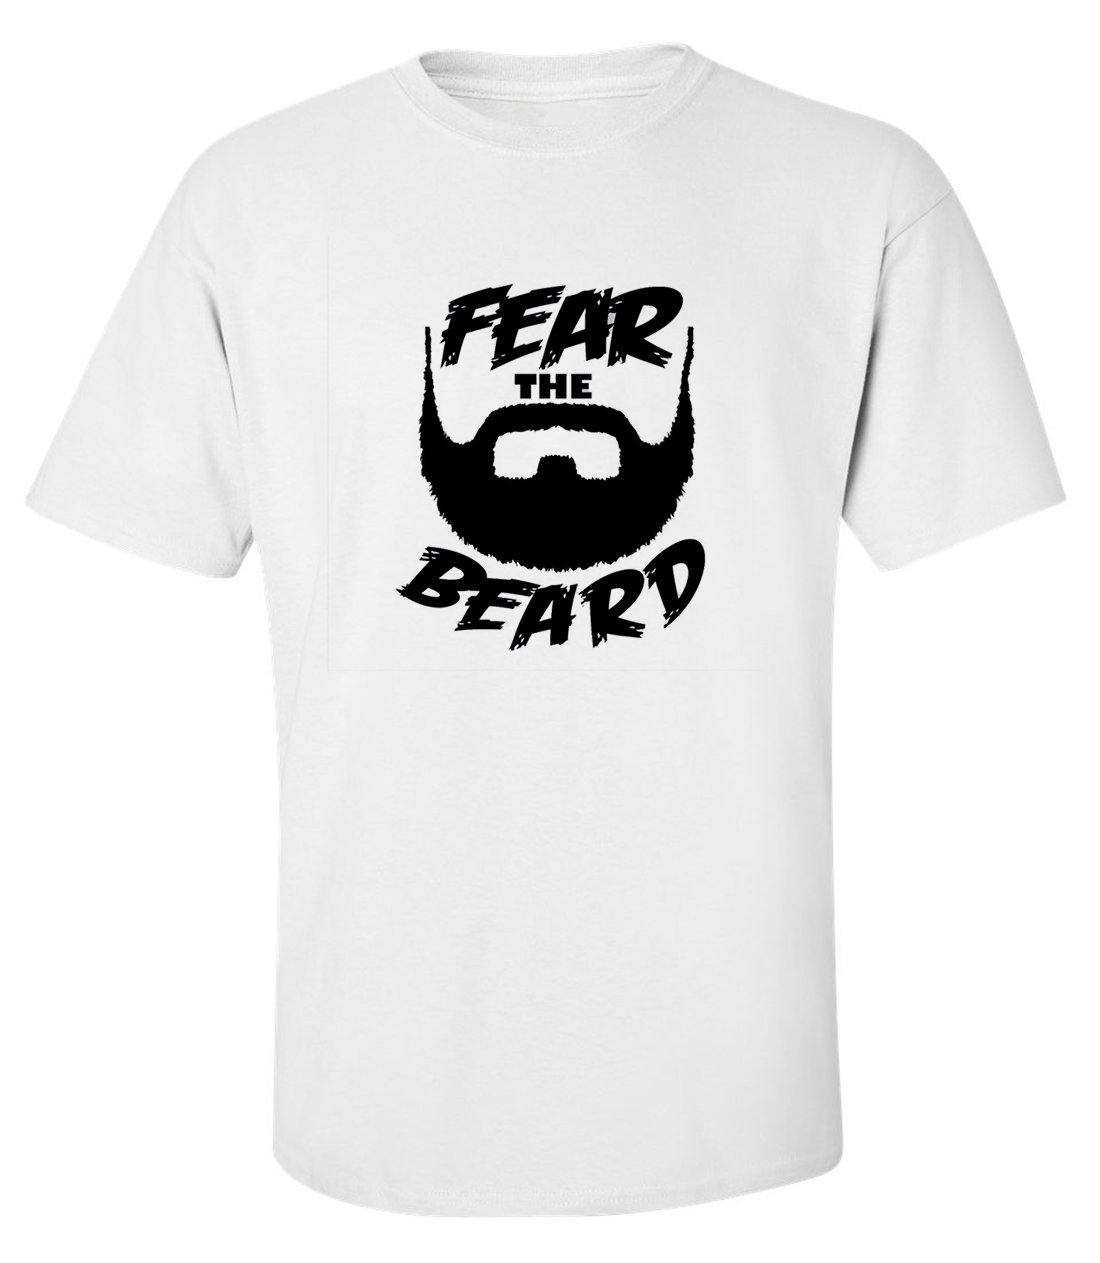 Fear the beard funny slogan men printed cotton white t-shirt size 2XL